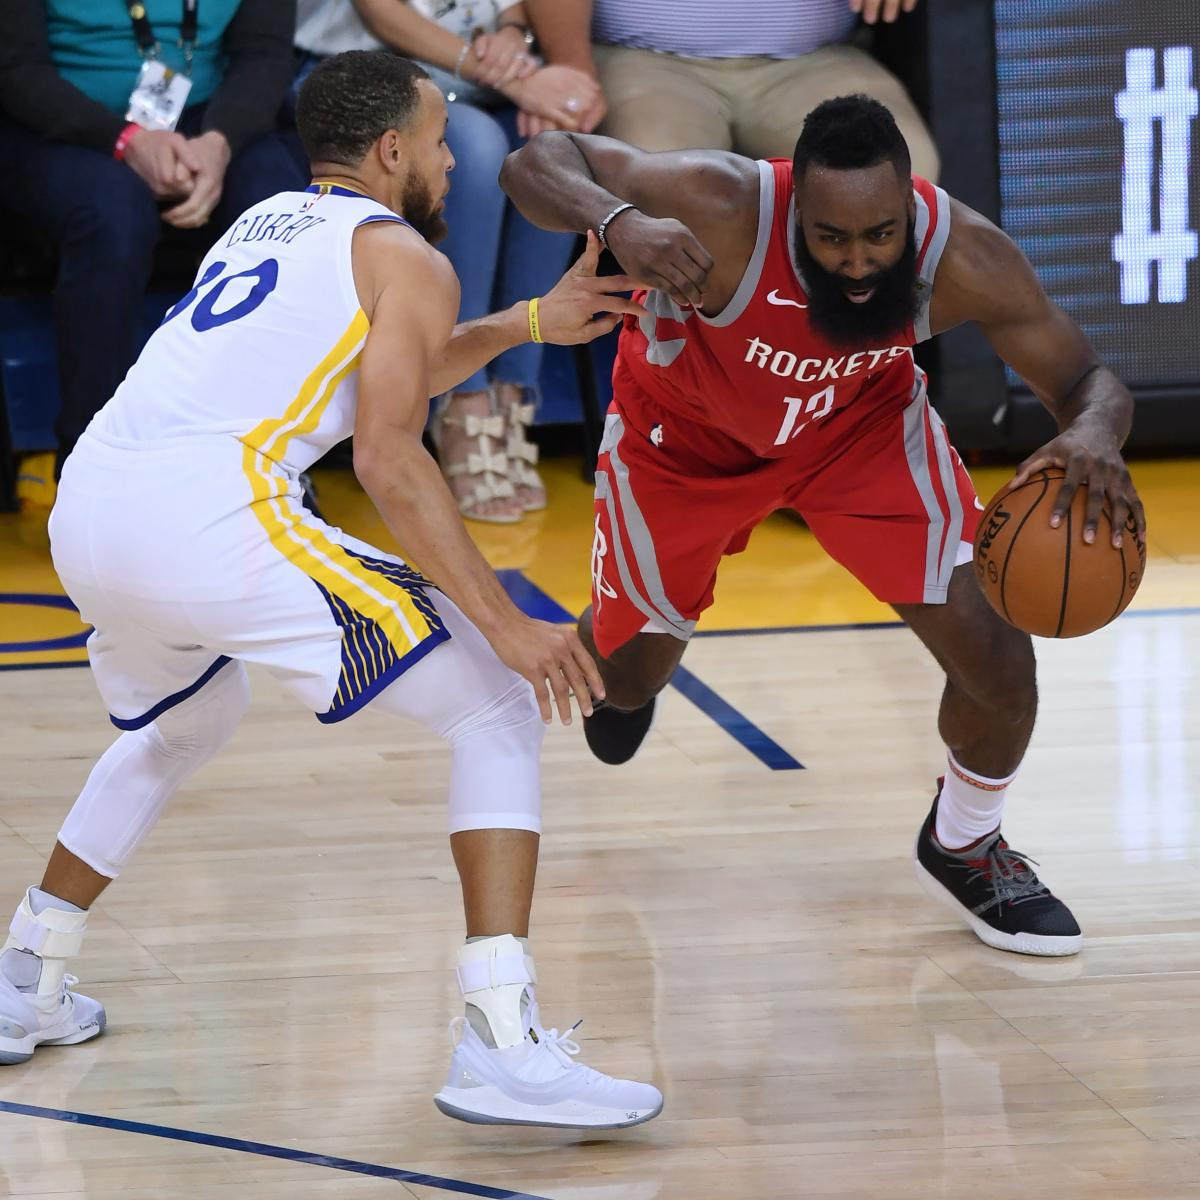 Rockets Vs Warriors Game 7 Where: Golden State Warriors Vs. Houston Rockets: Game 7 Odds